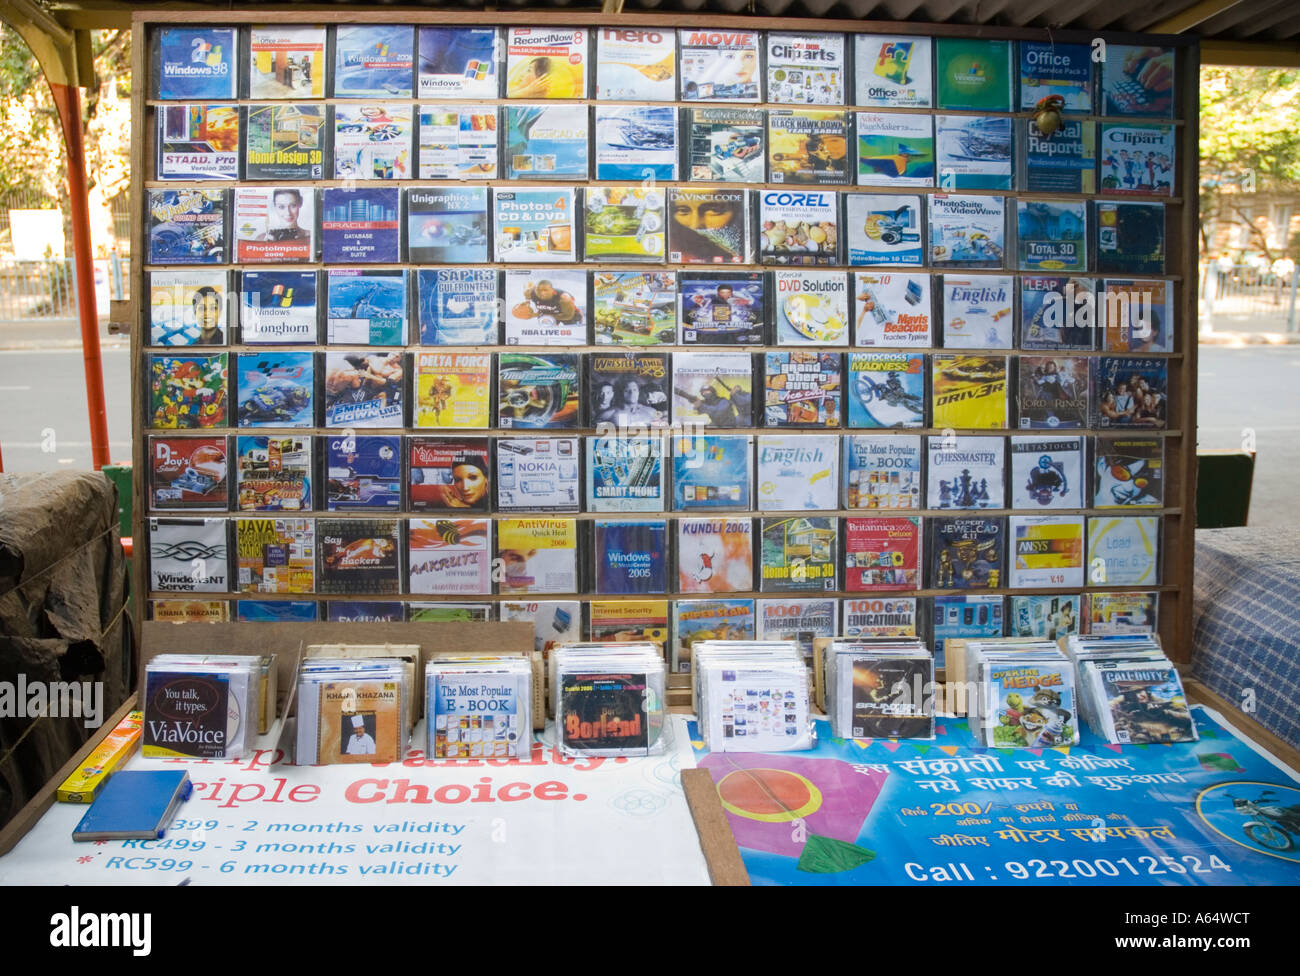 Pirated Illegal CD software and movies for sale on a street